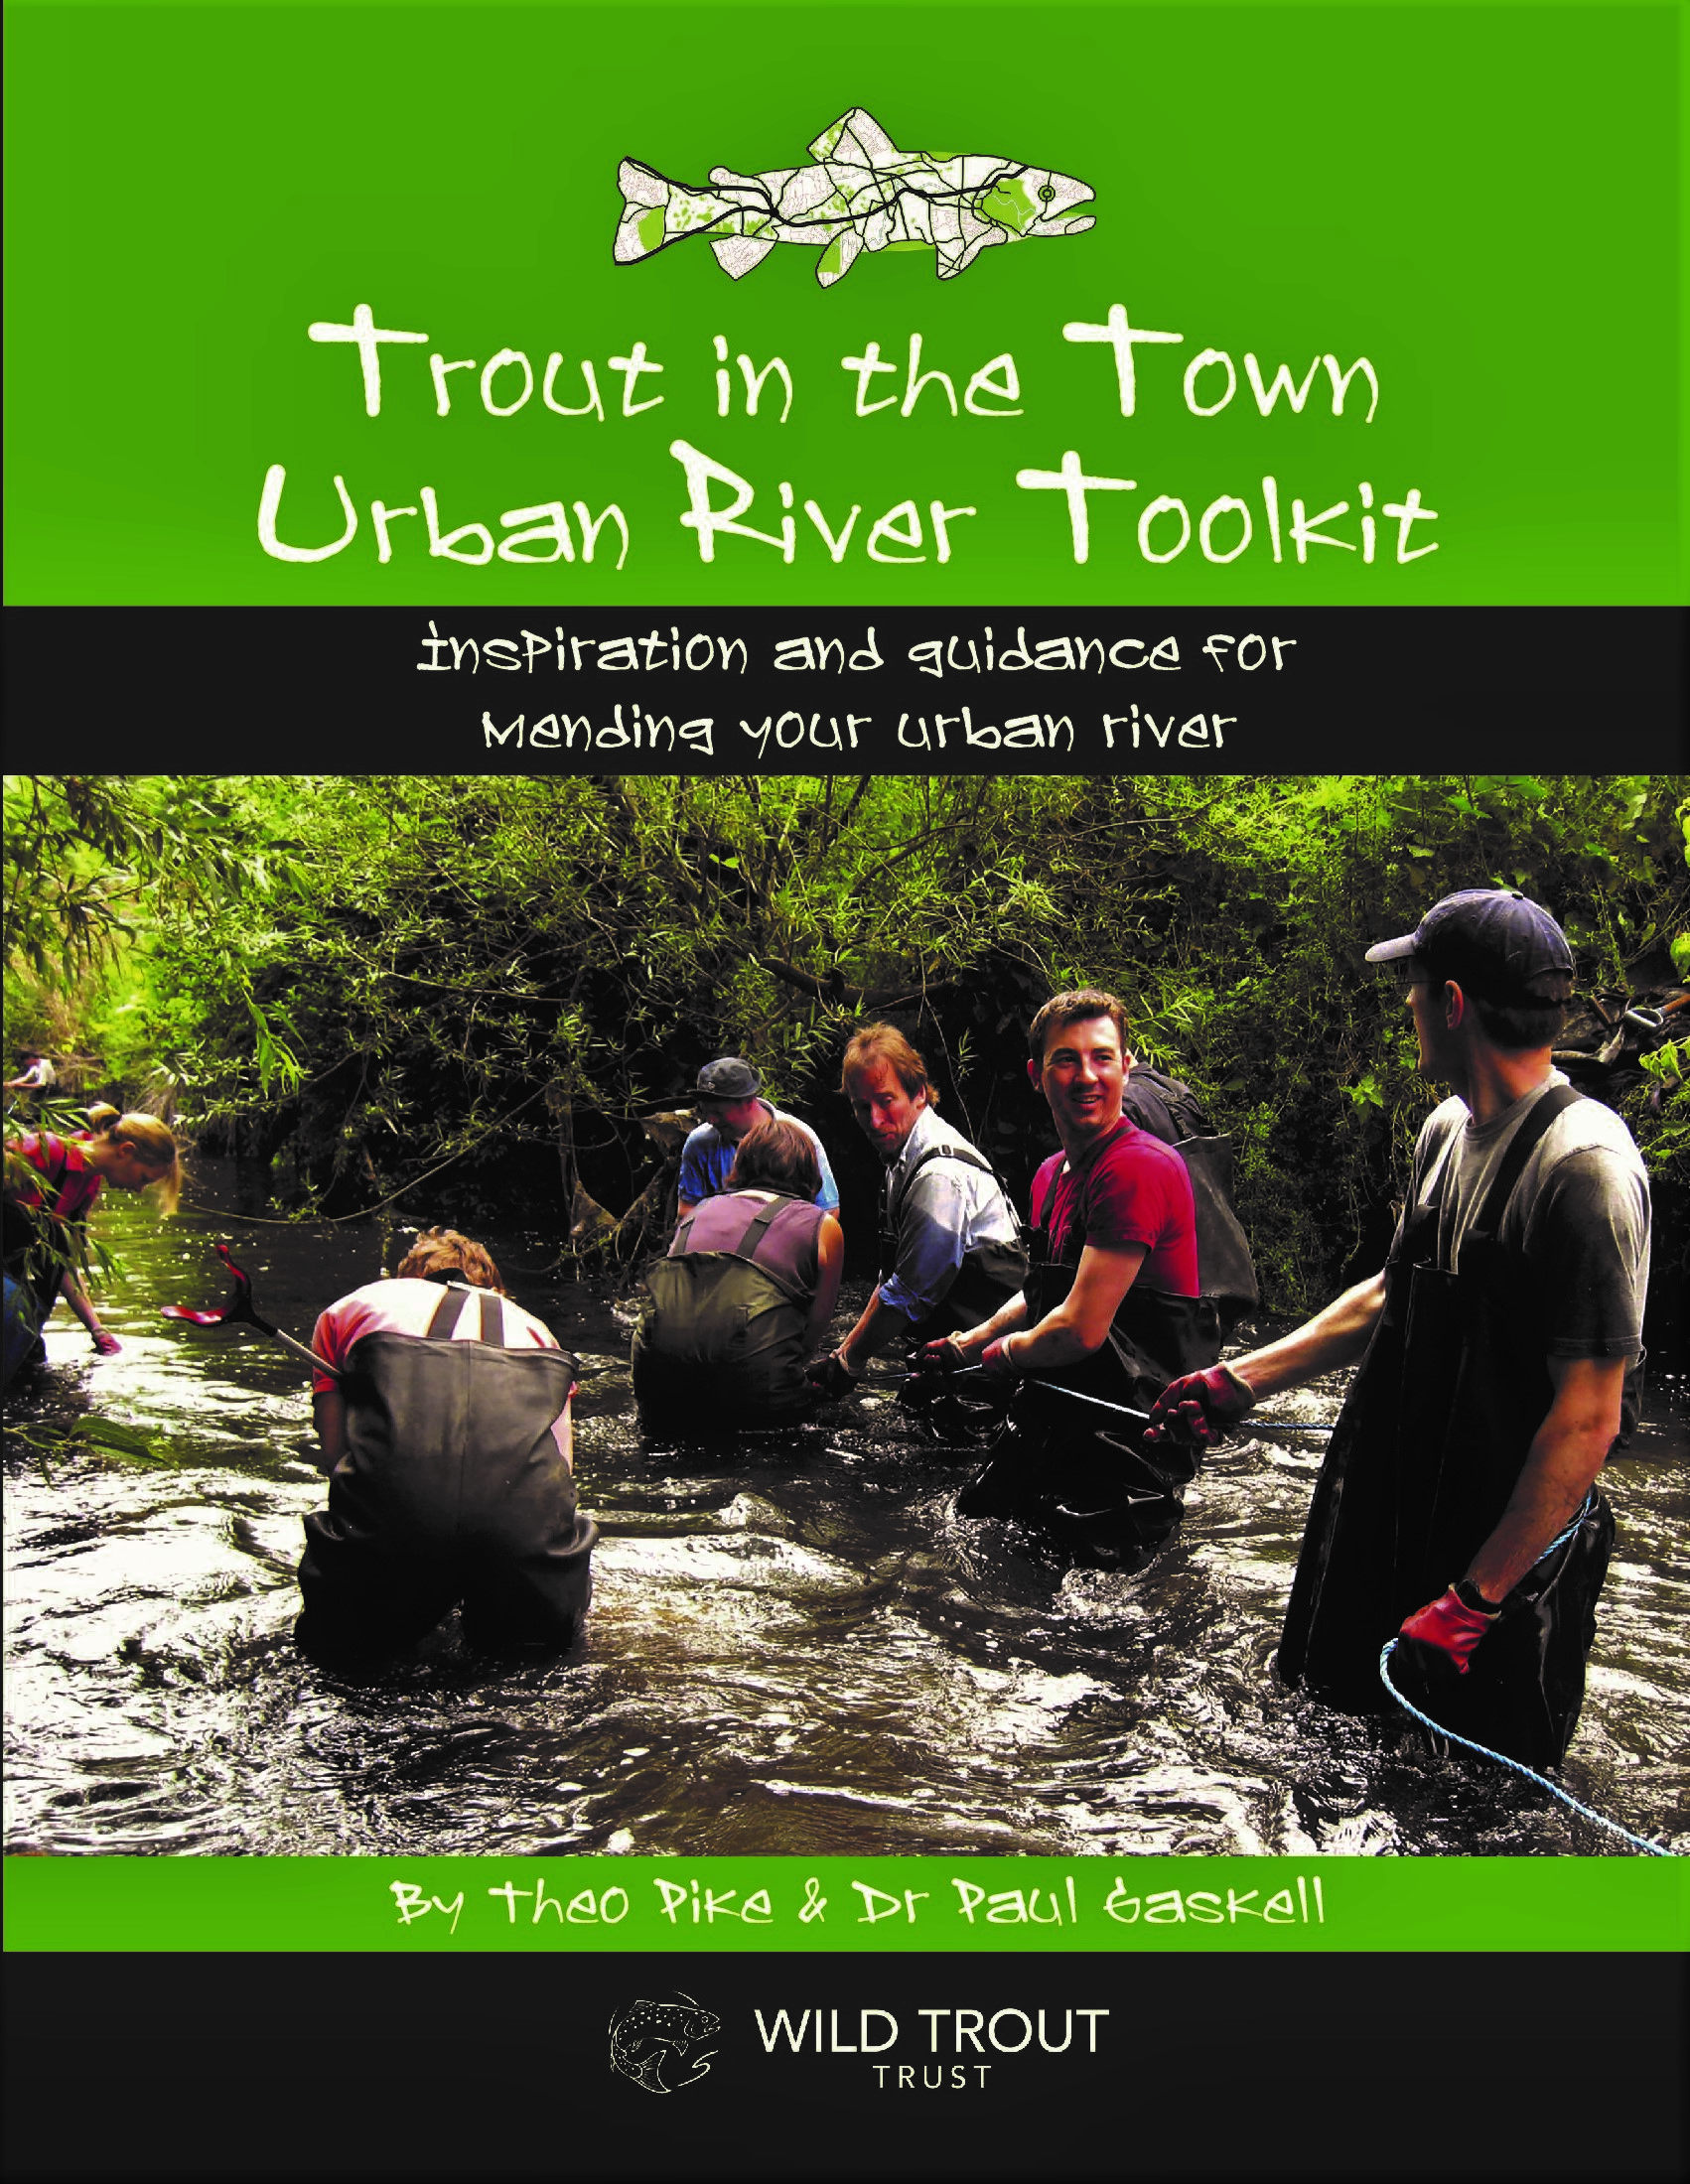 Urban river toolkit